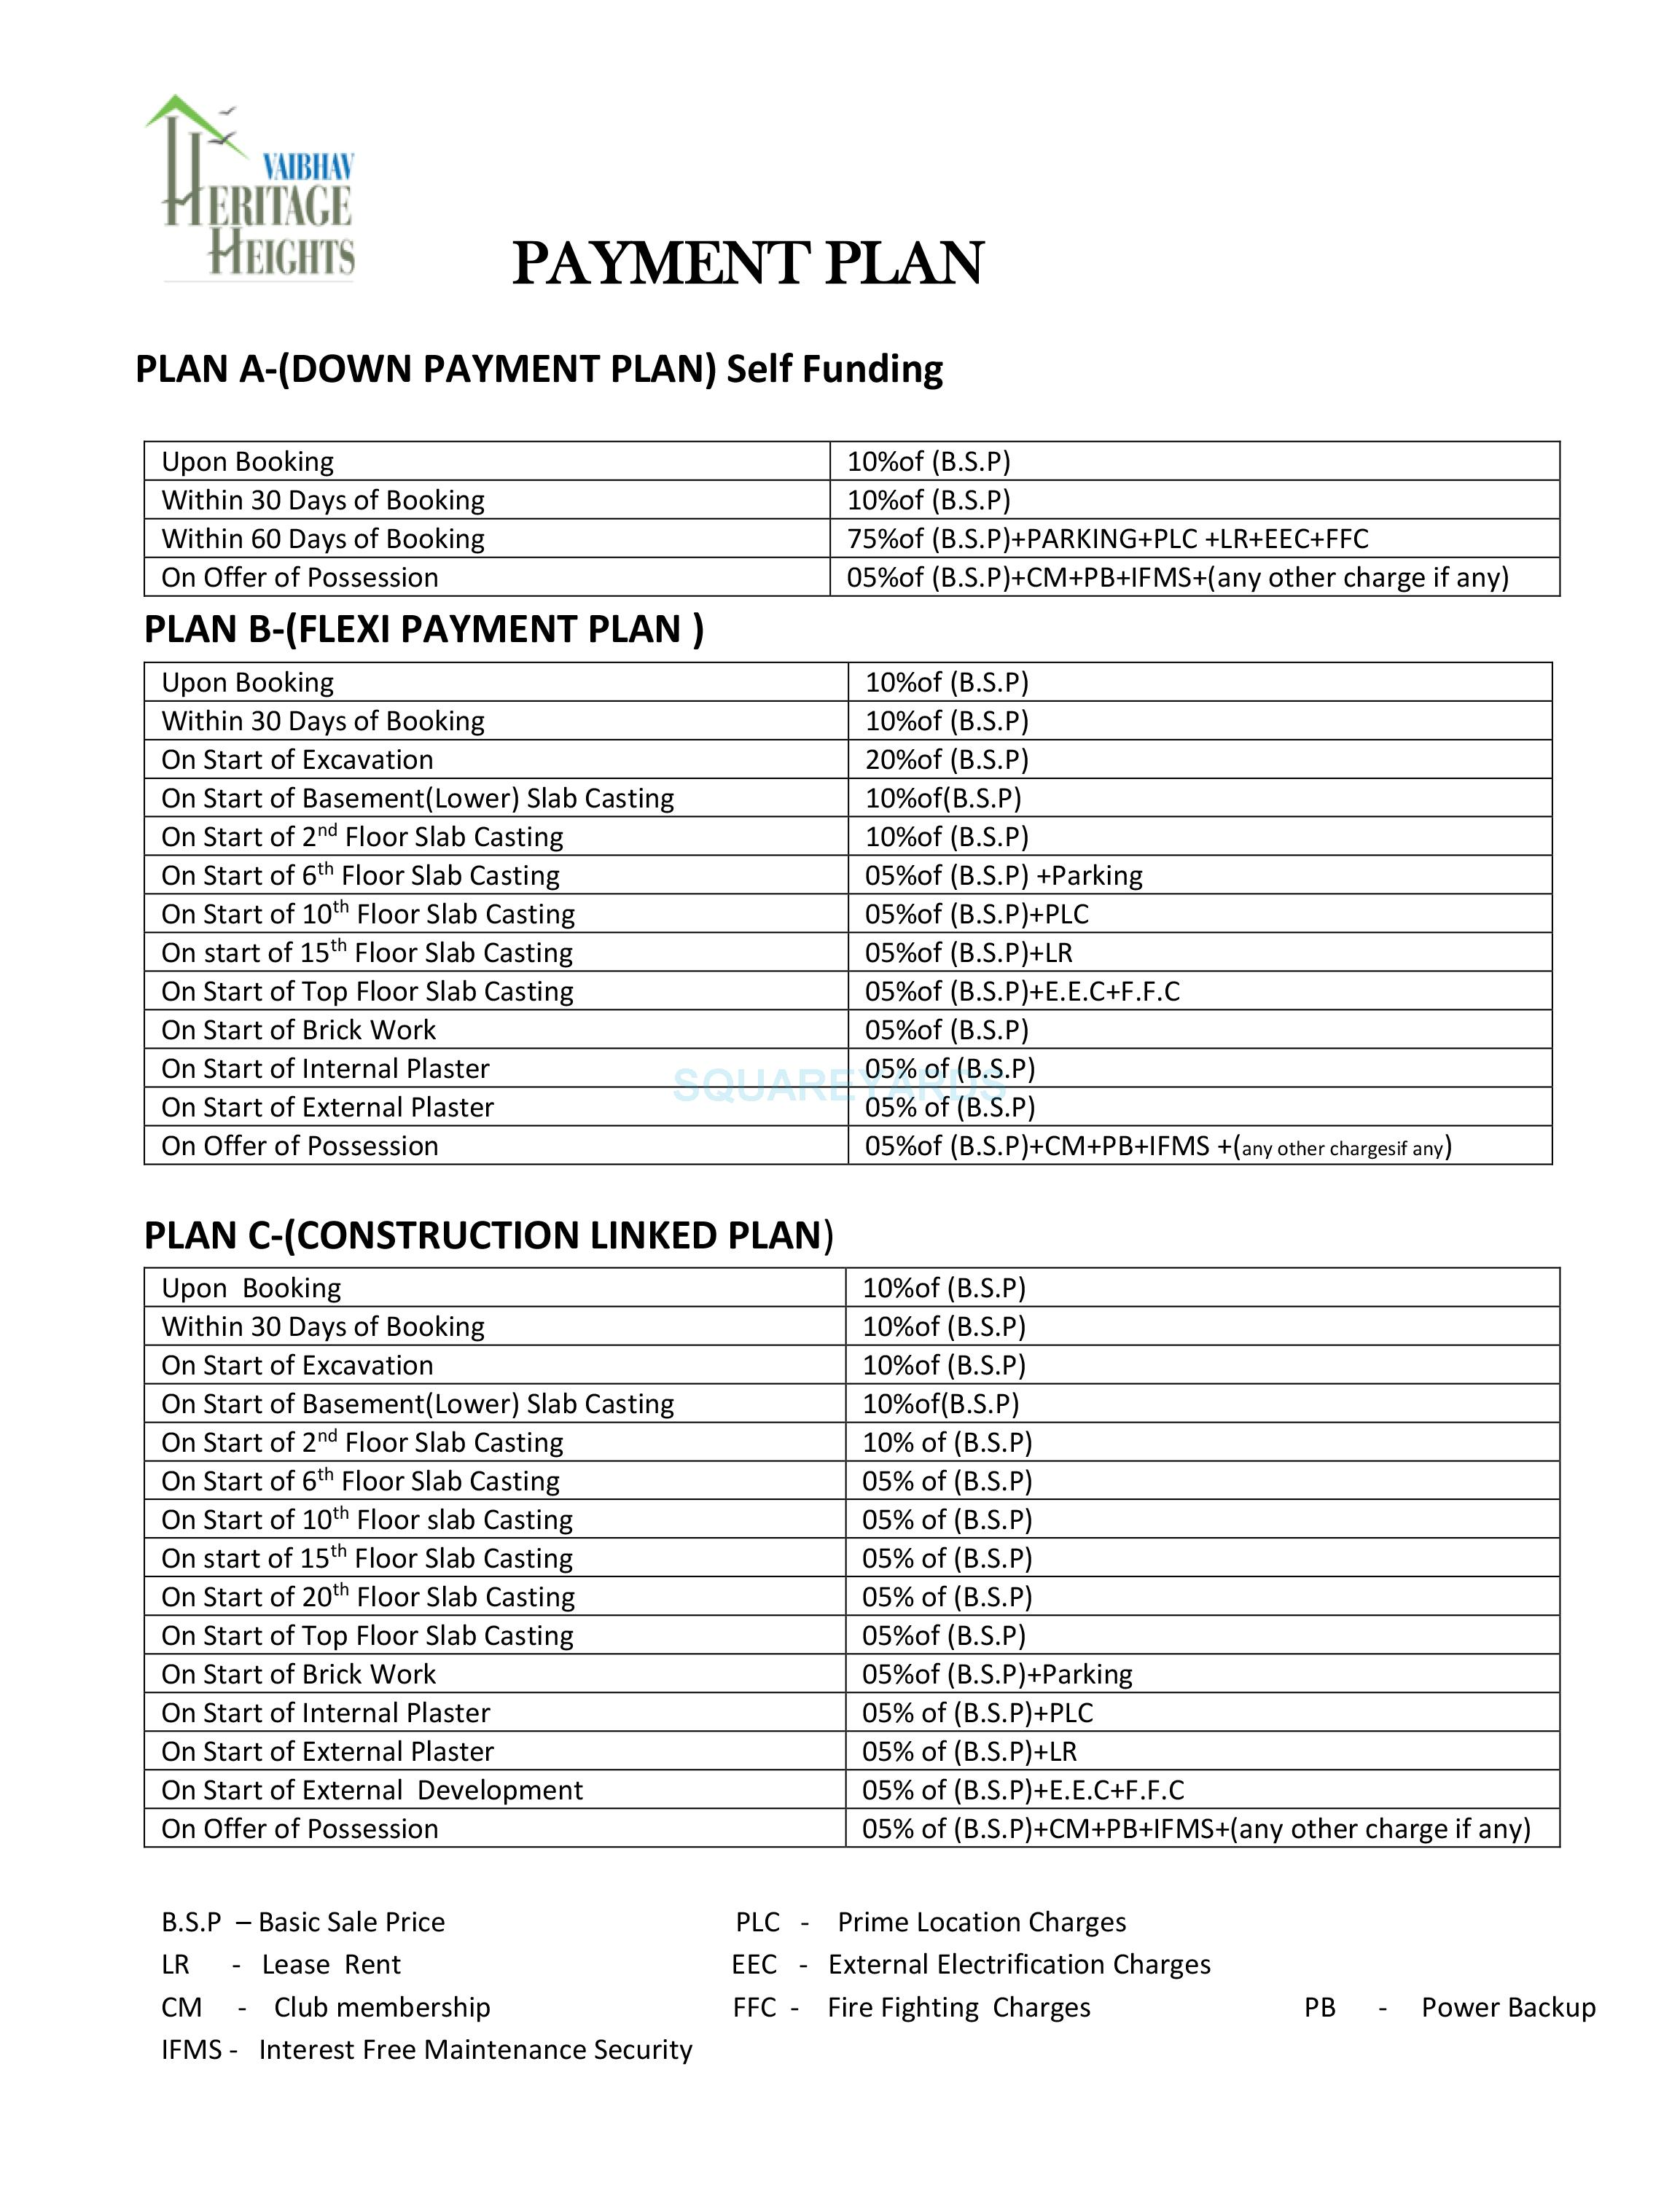 bsb vaibhav heritage height payment plan image1